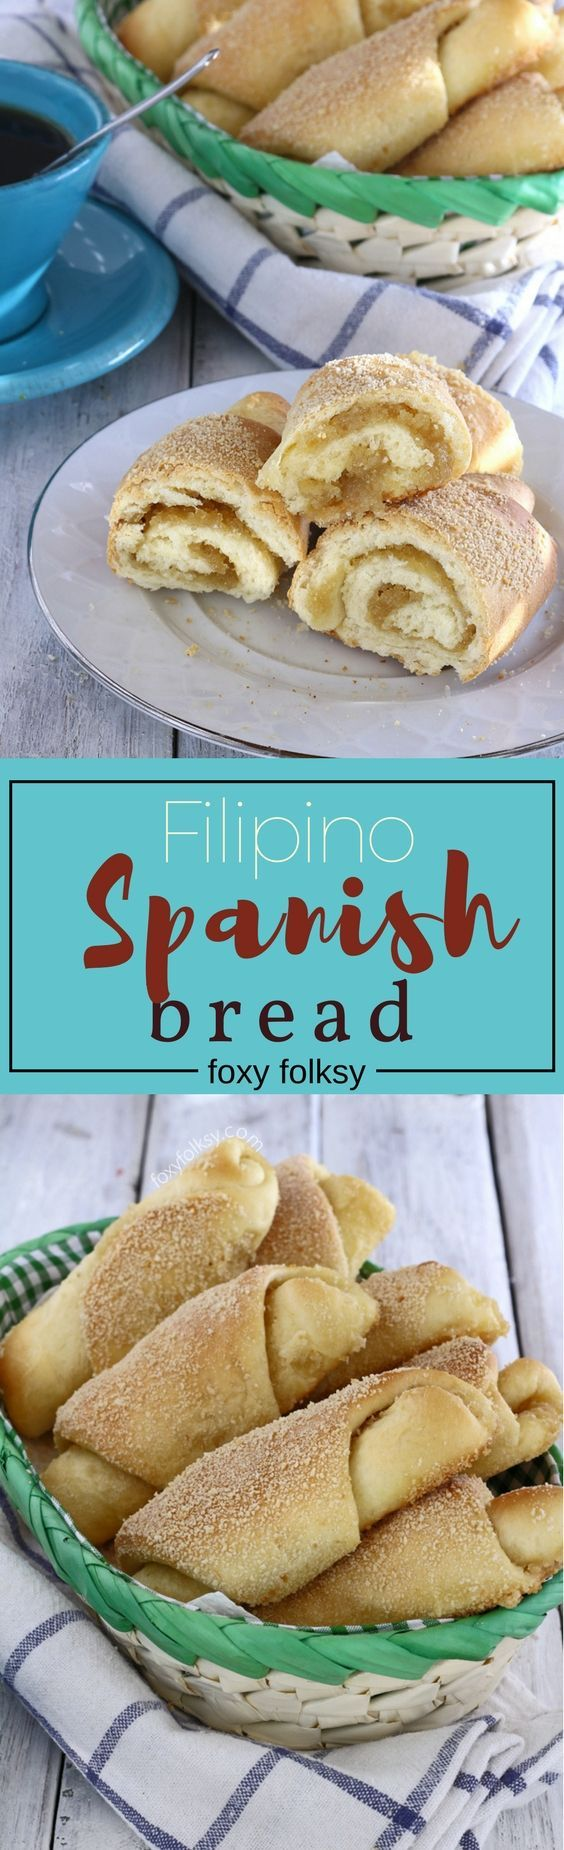 Learn how to make this delicious Filipino Spanish bread for your afternoon snack. | www.foxyfolksy.com #bread #snack #pastry